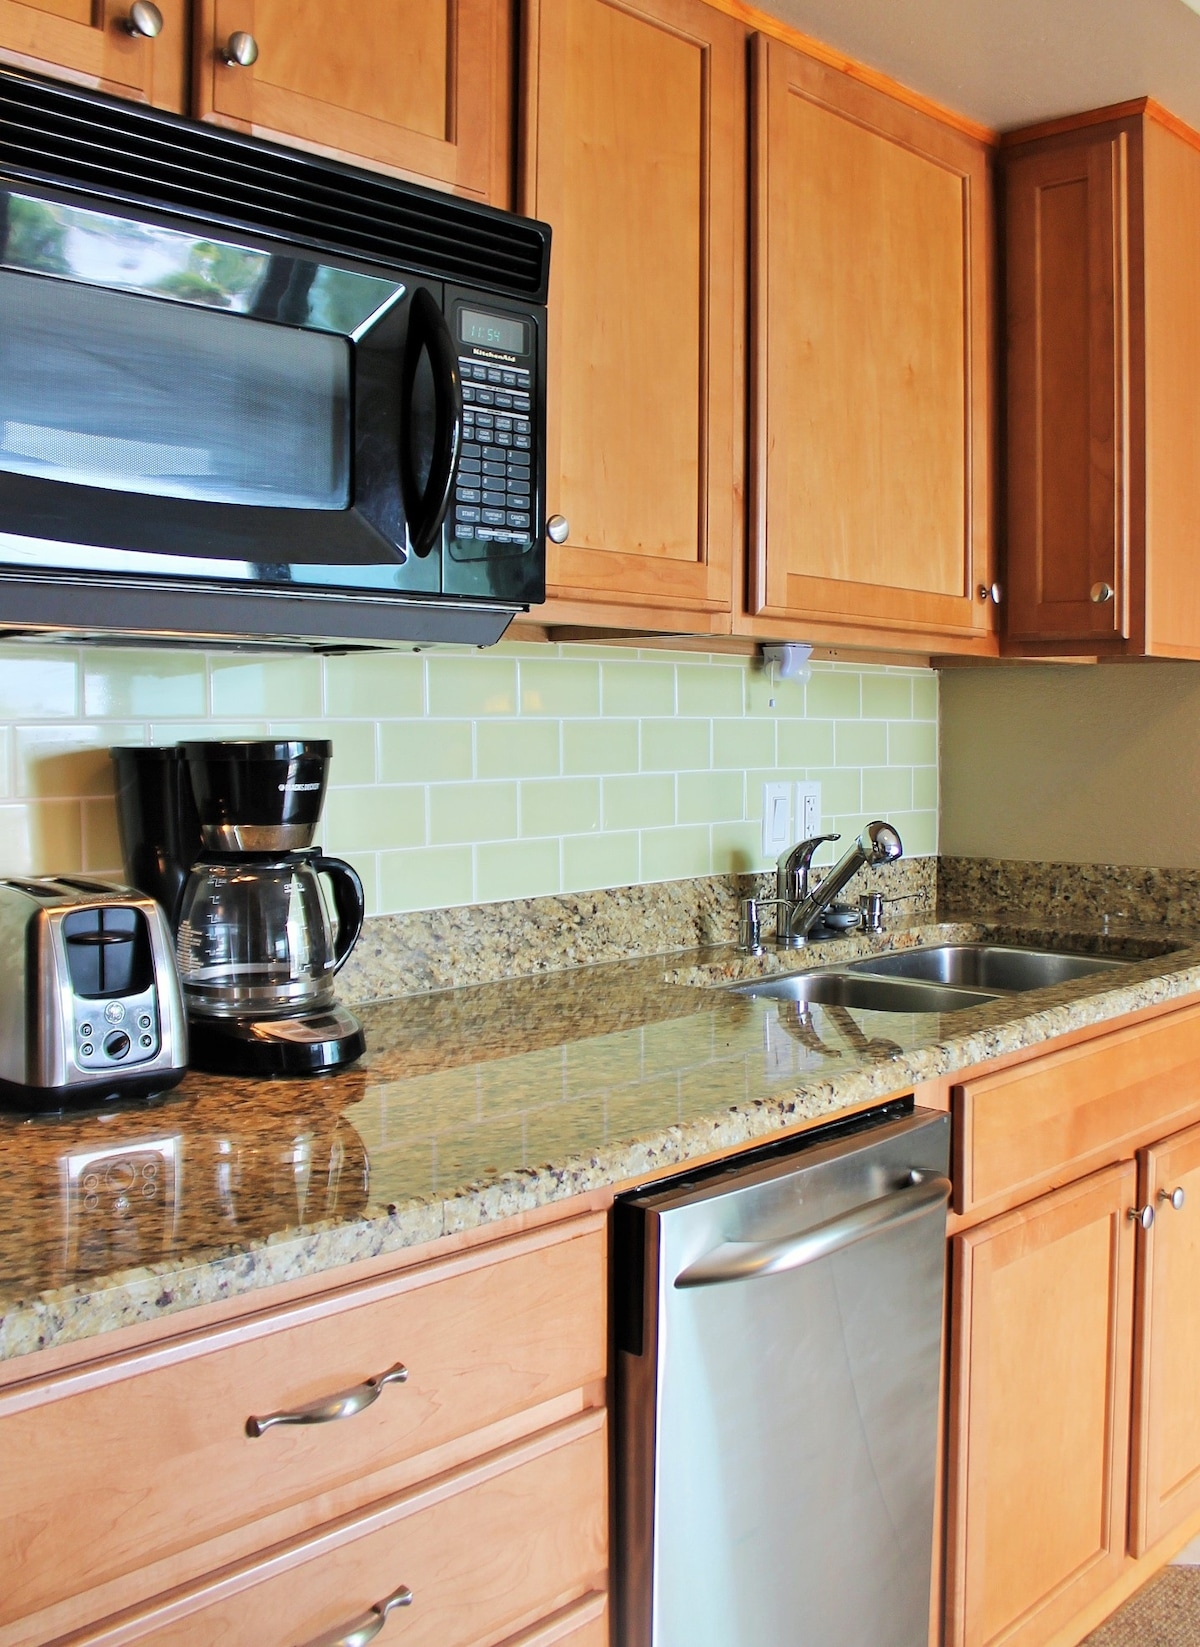 Deep stainless steel sink and stainless steel dishwasher.